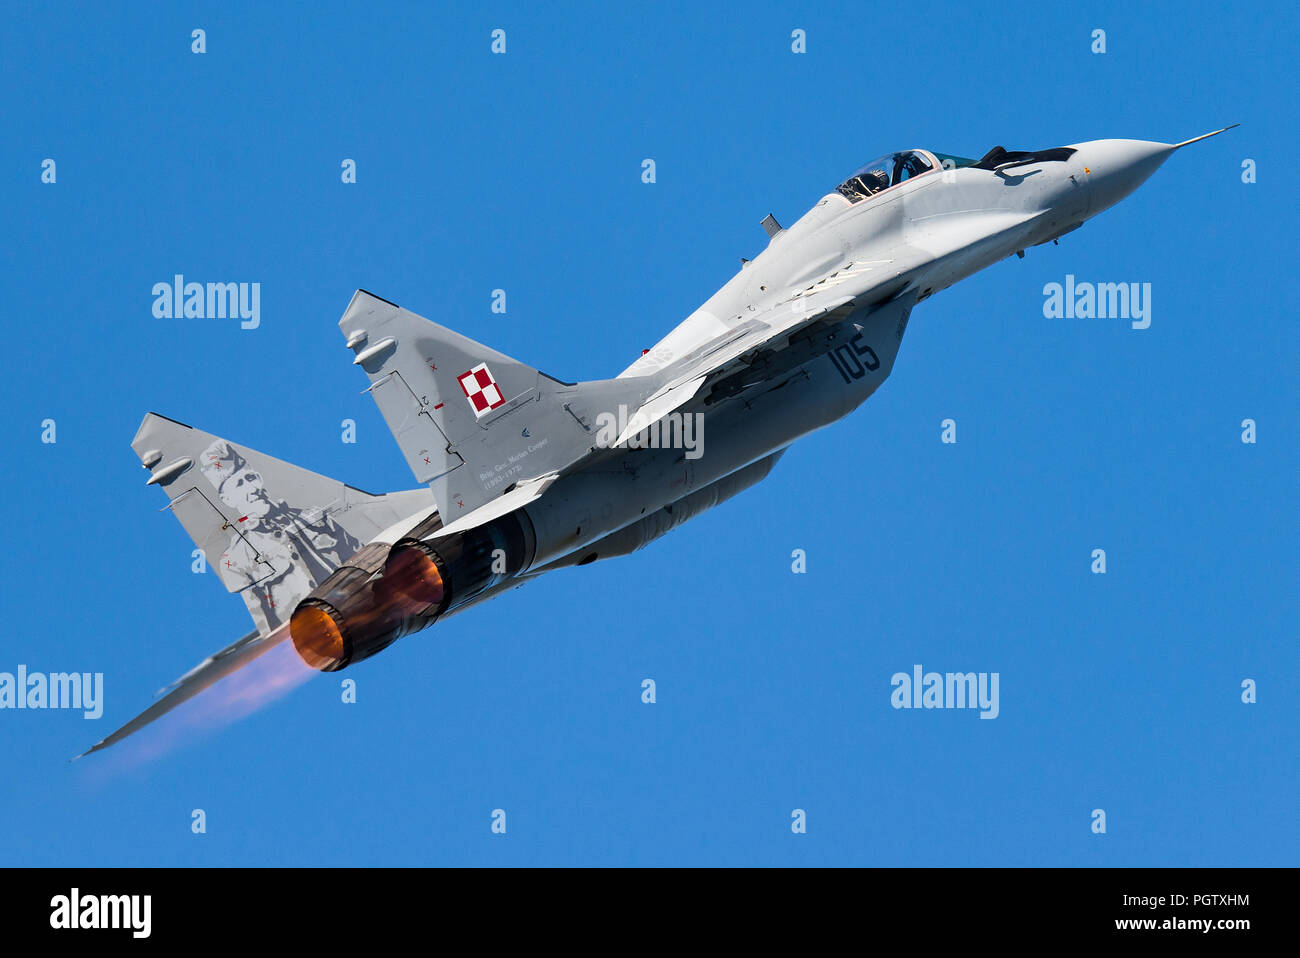 A Mikoyan MiG-29 multirole fighter jet of the Polish Air Force. Stock Photo